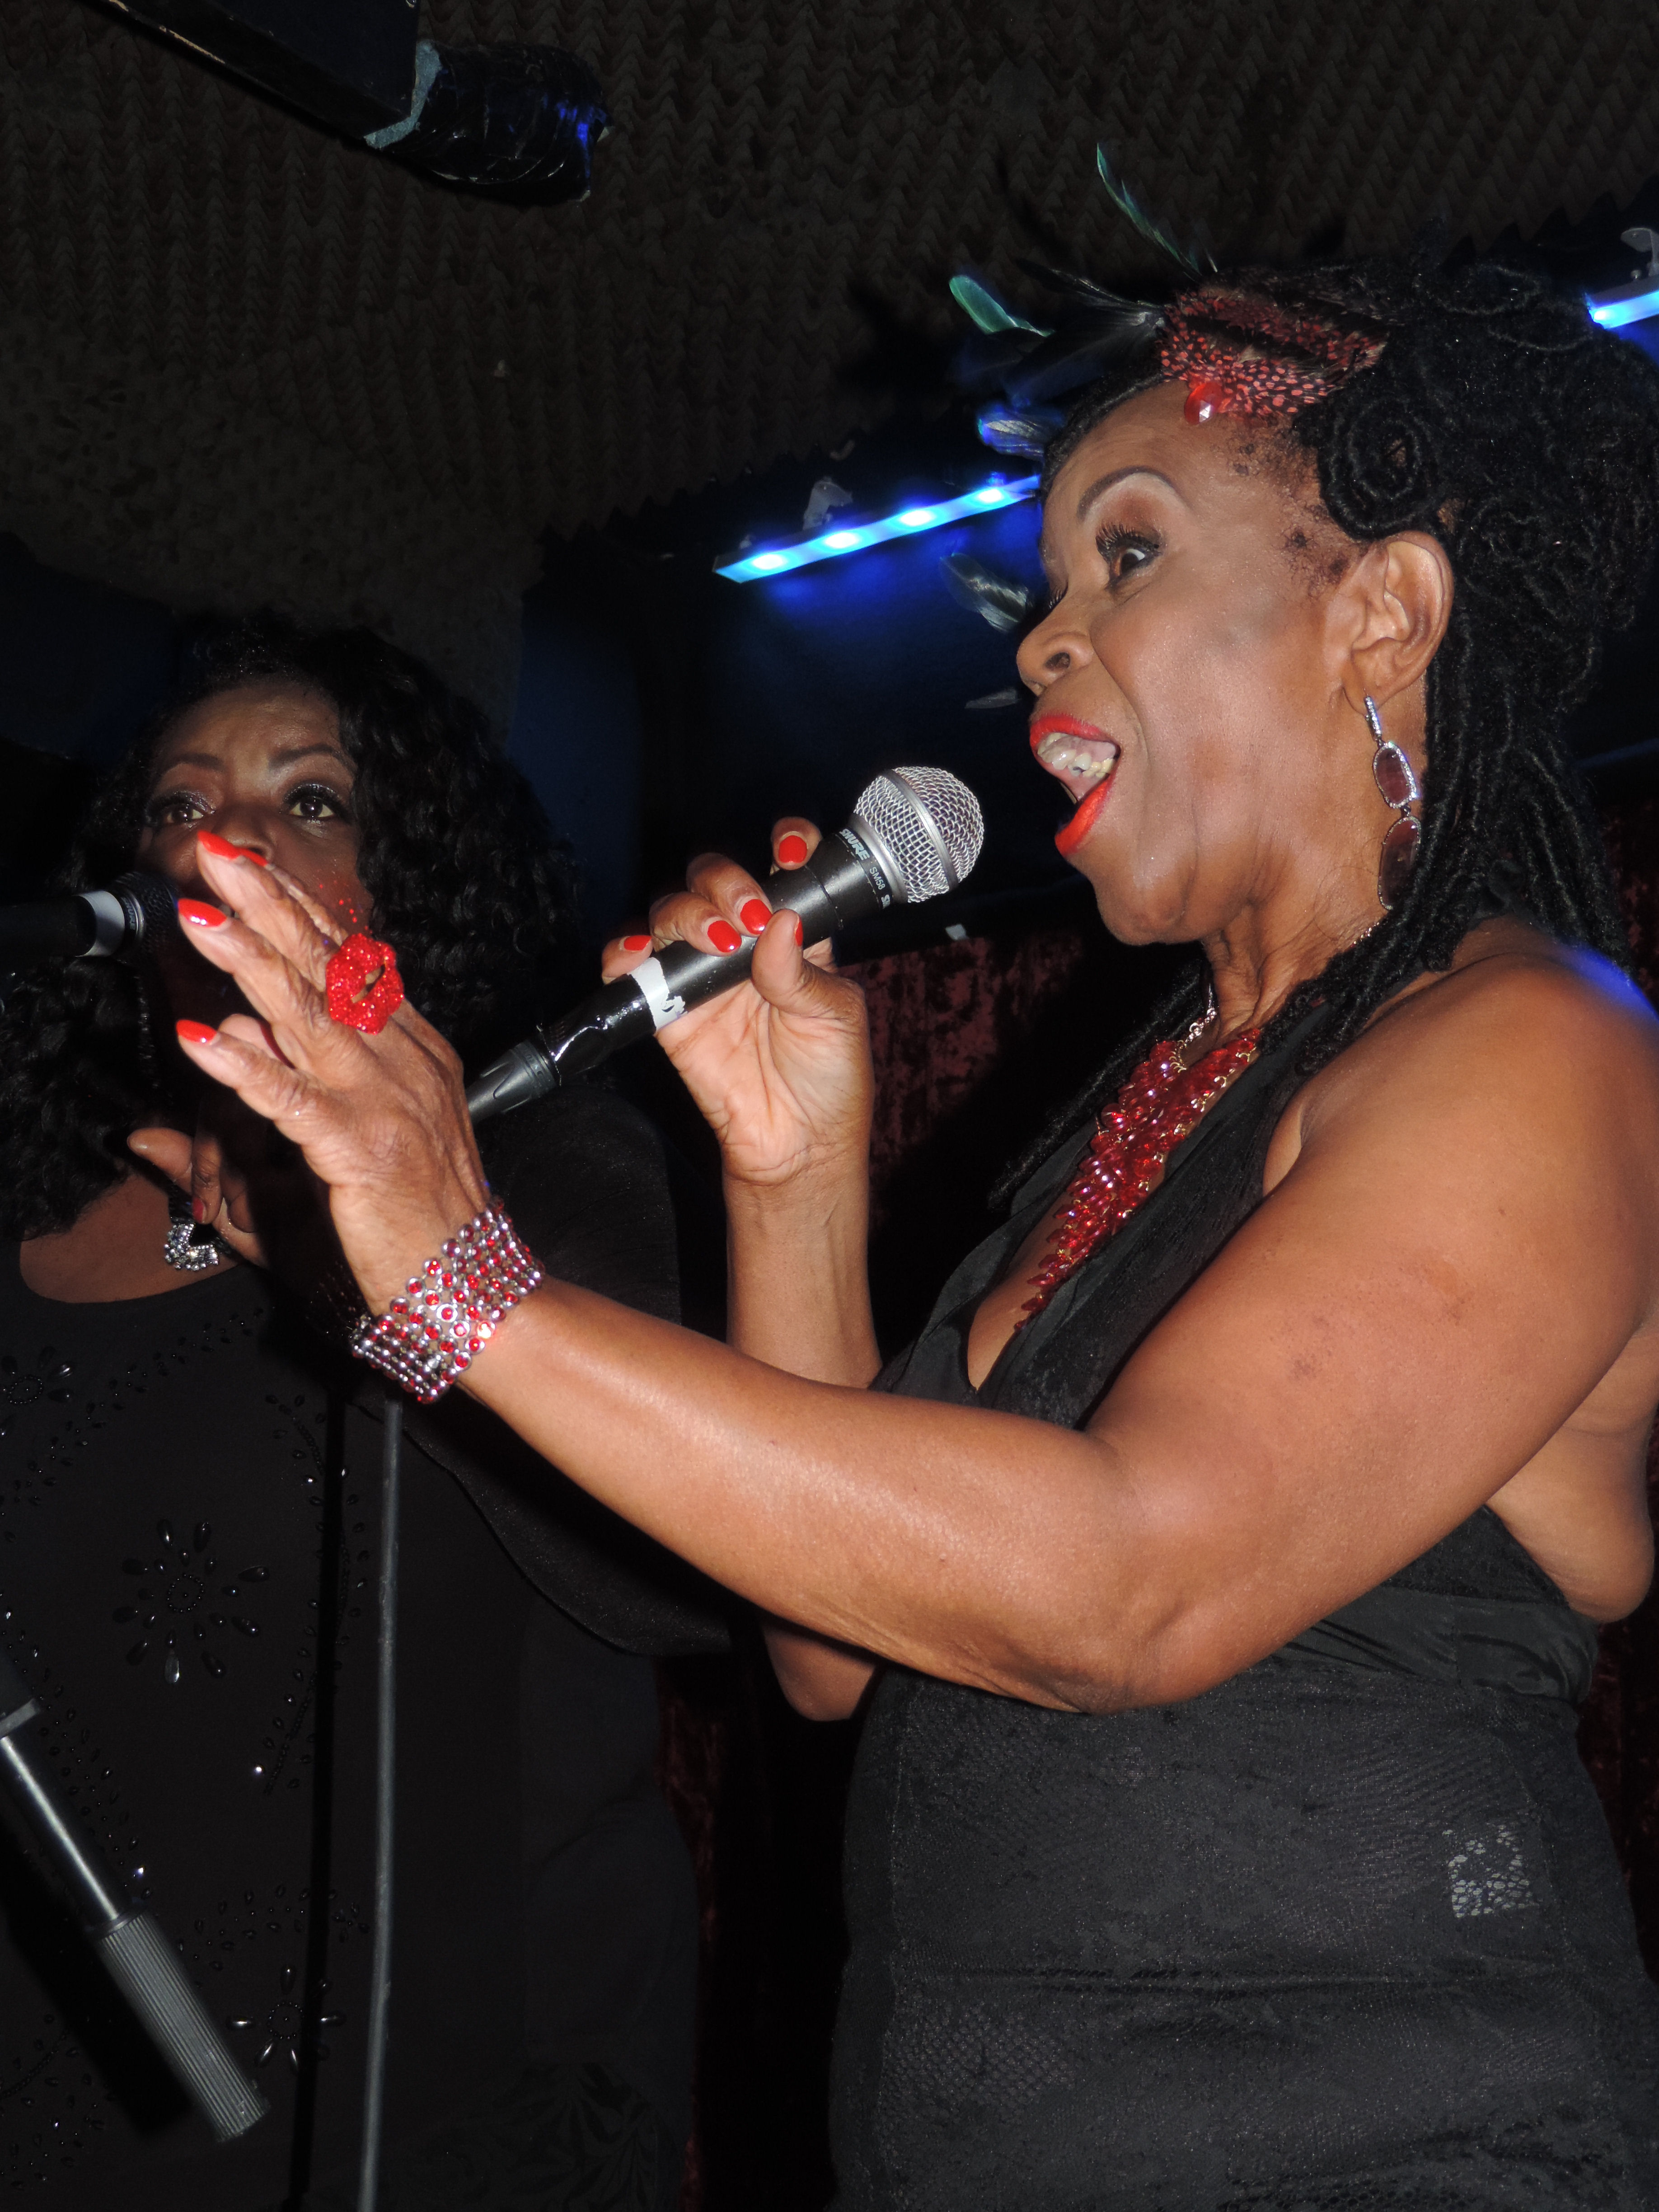 Picture: P P ARNOLD at The Borderline